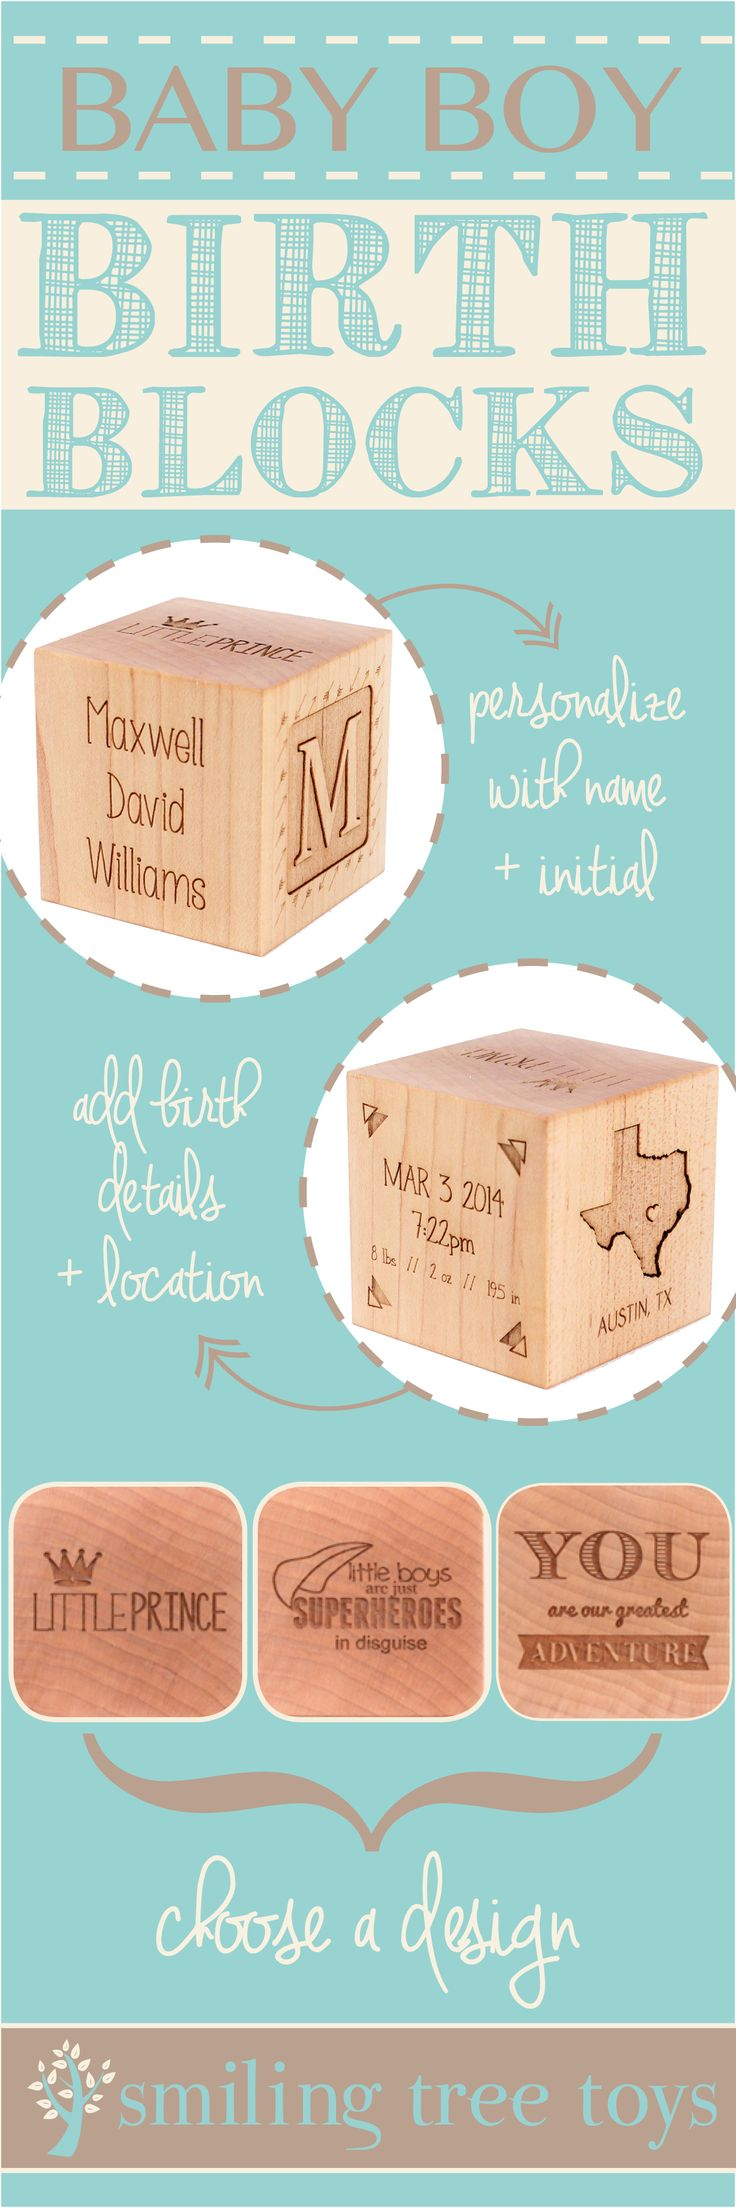 Best 25 personalized baby gifts ideas on pinterest pink keepsake boy birth block the perfect personalized natural heirloom gift celebrating baby negle